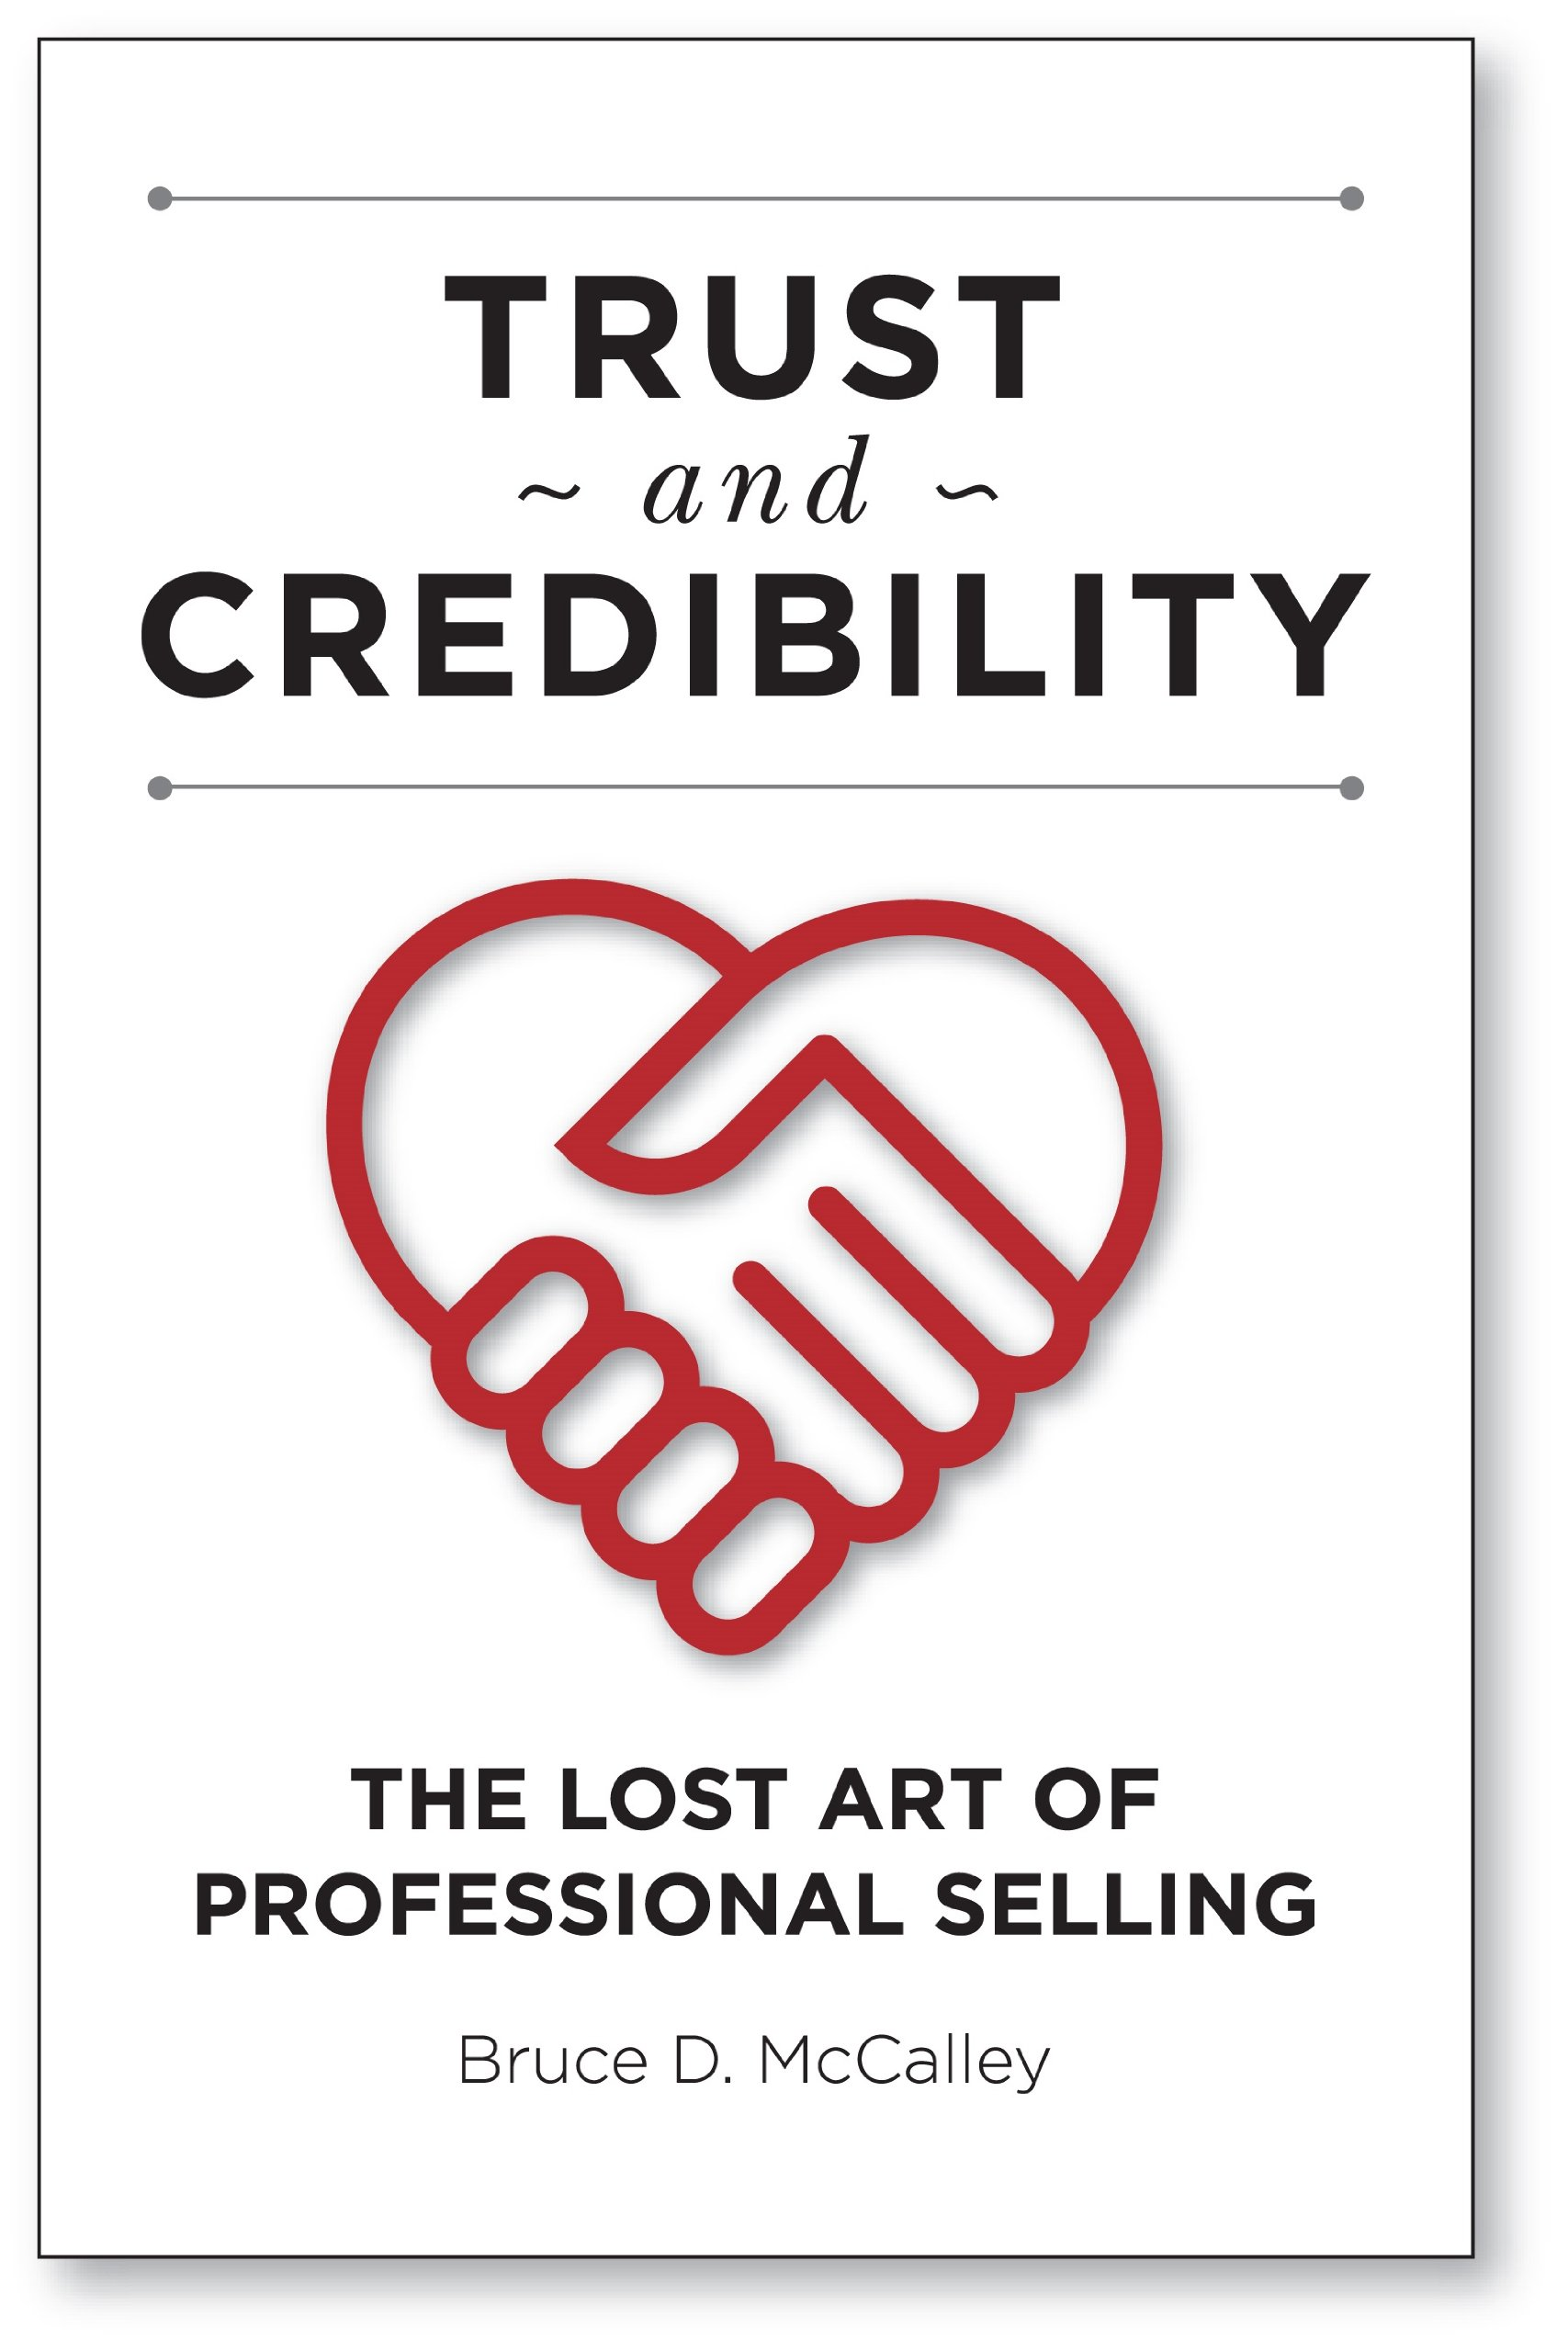 Trust & Credibility - The Lost Art of Professional Selling